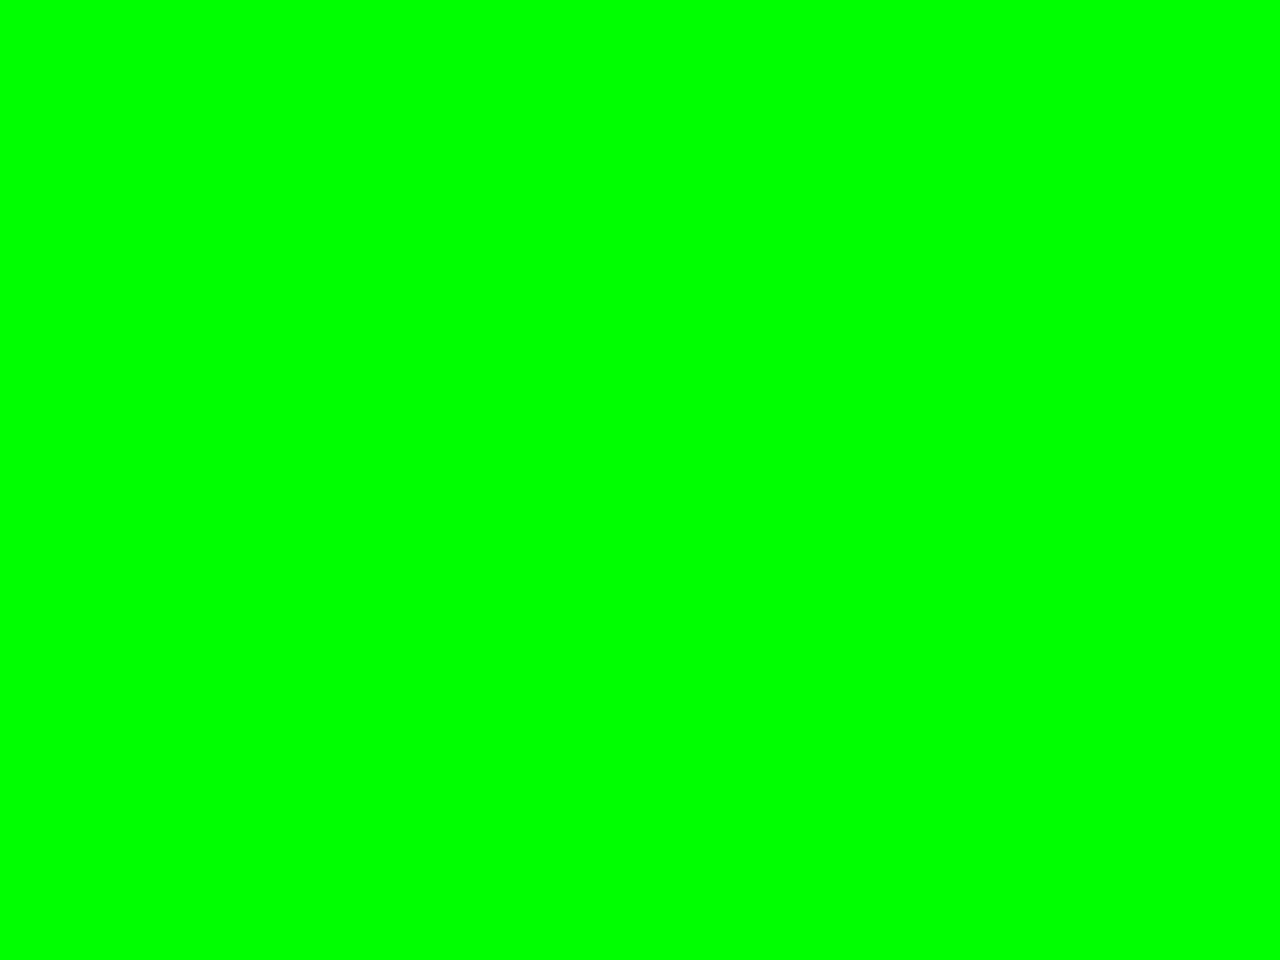 1280x960 Lime Web Green Solid Color Background